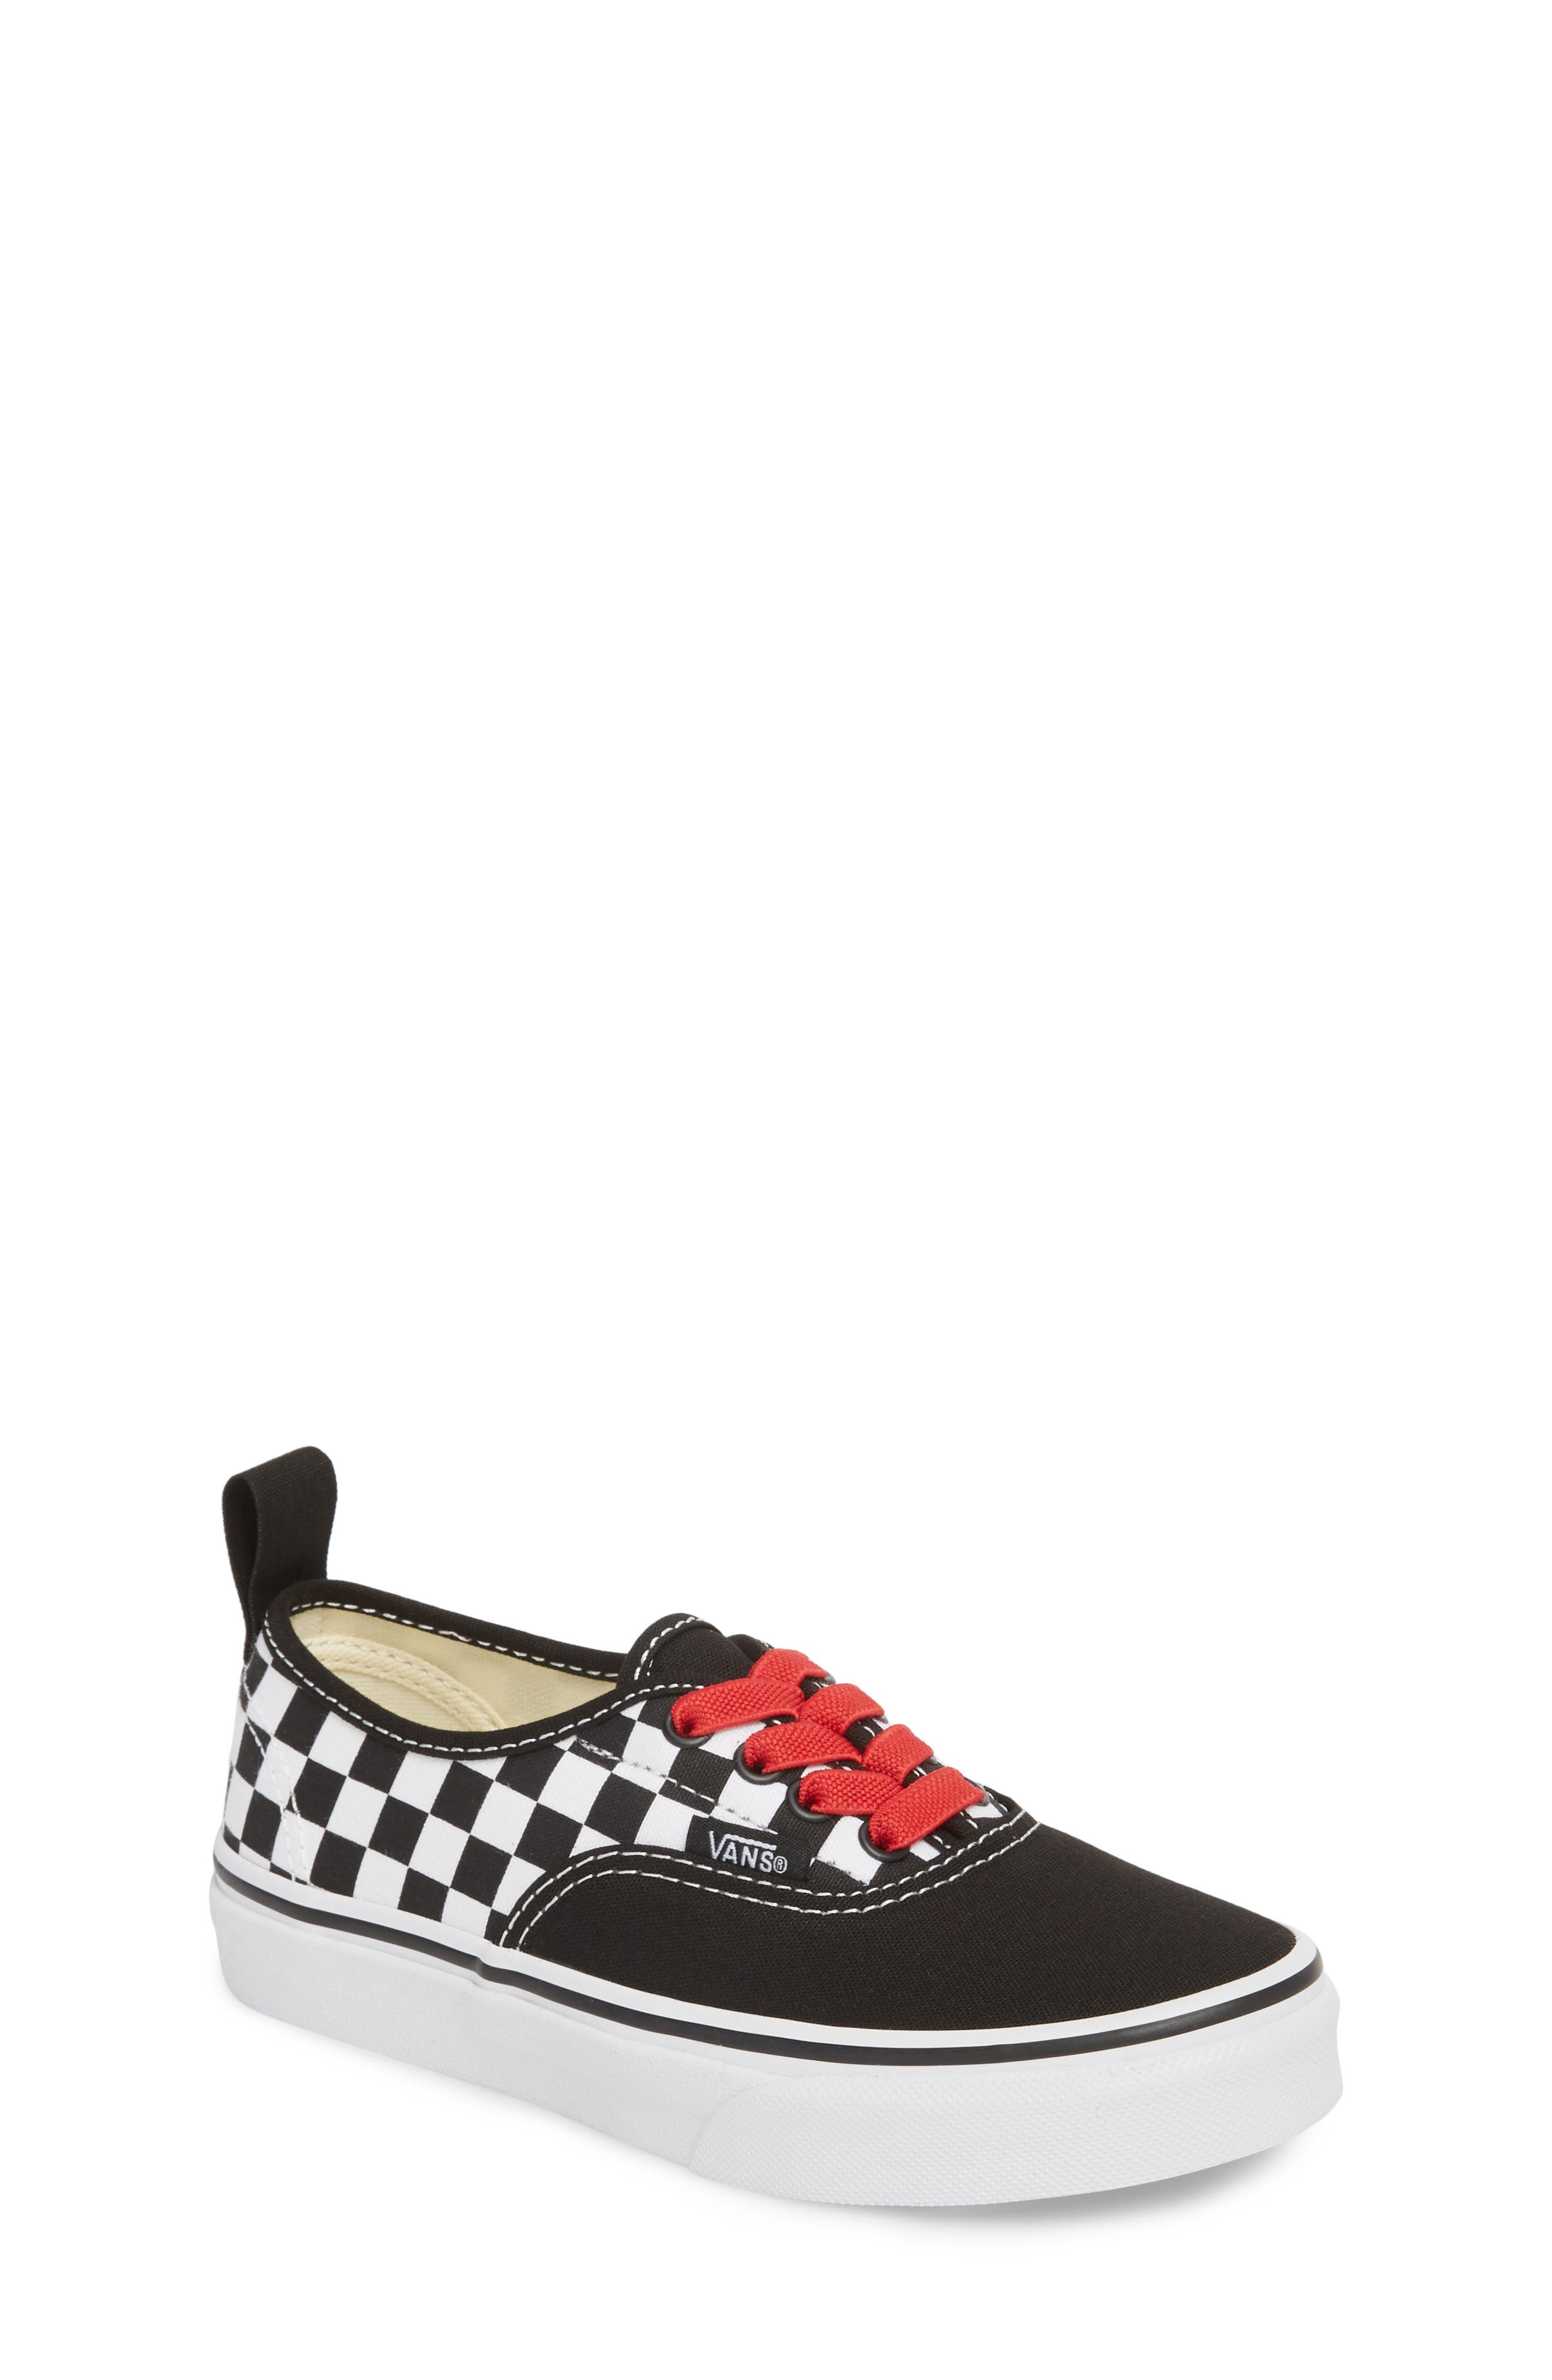 Authentic Elastic Lace Sneaker,                         Main,                         color, CHECKERBOARD BLACK/ RED/ WHITE